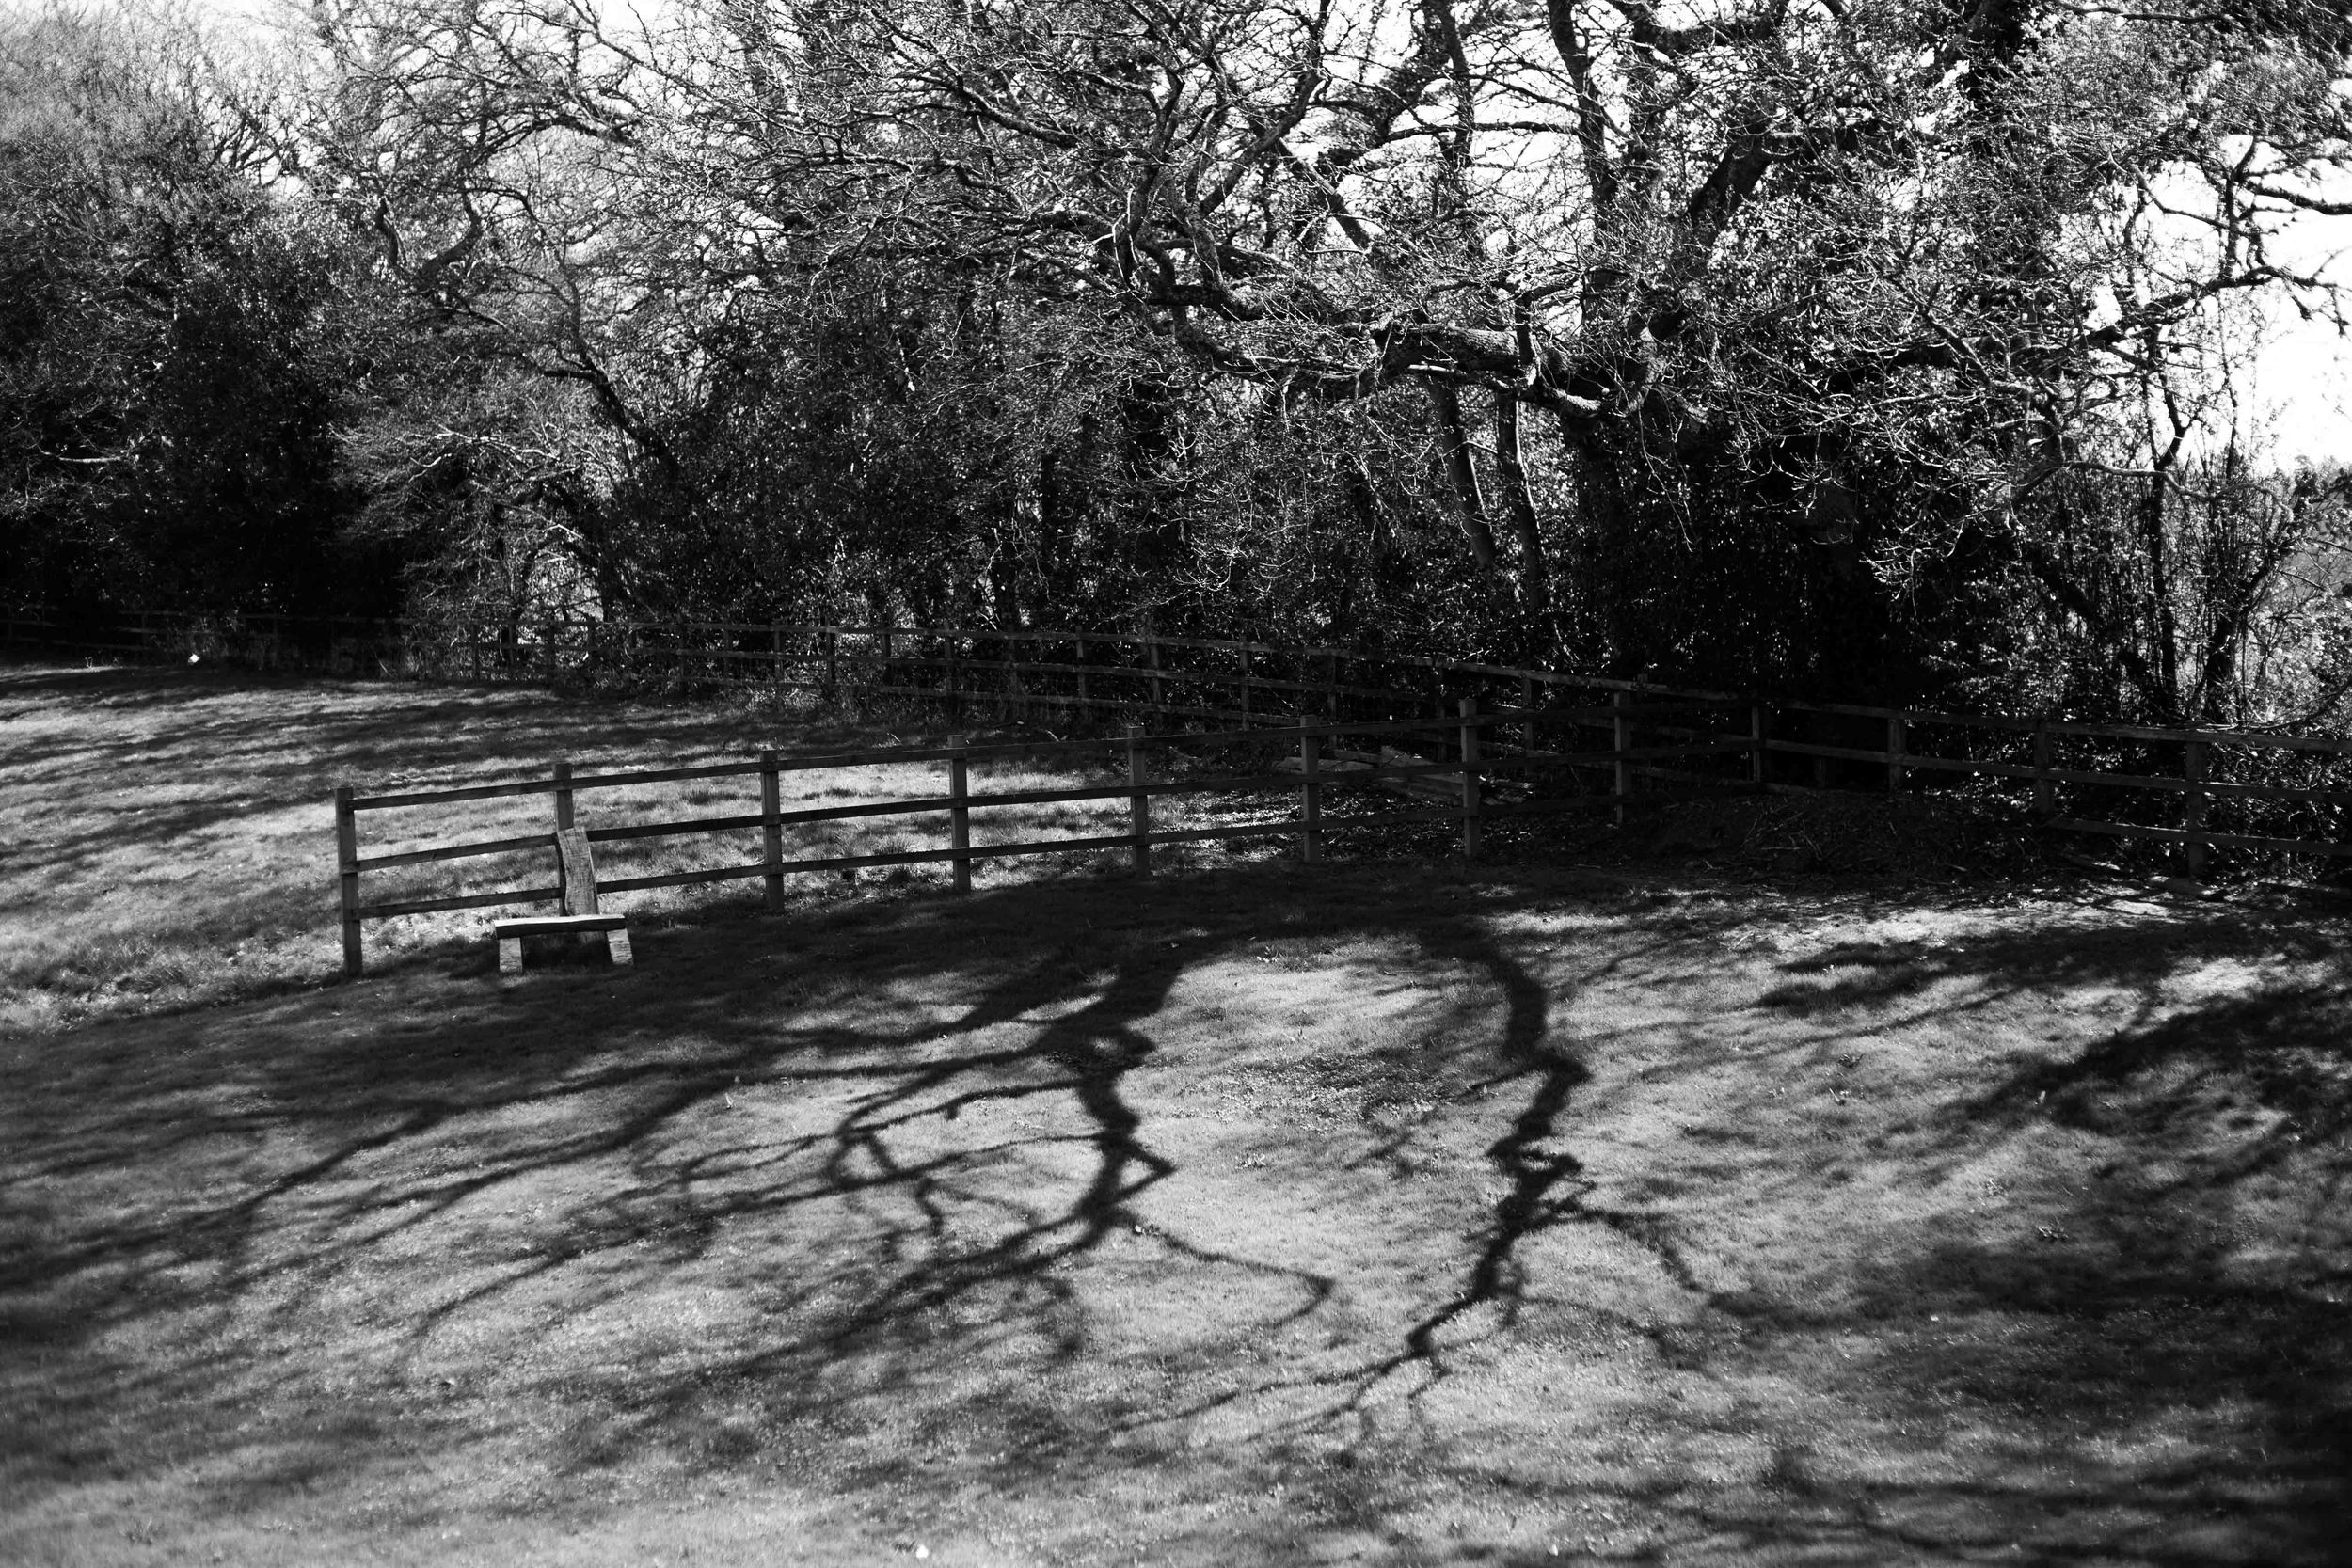 Reflections on those warm reaching shadows